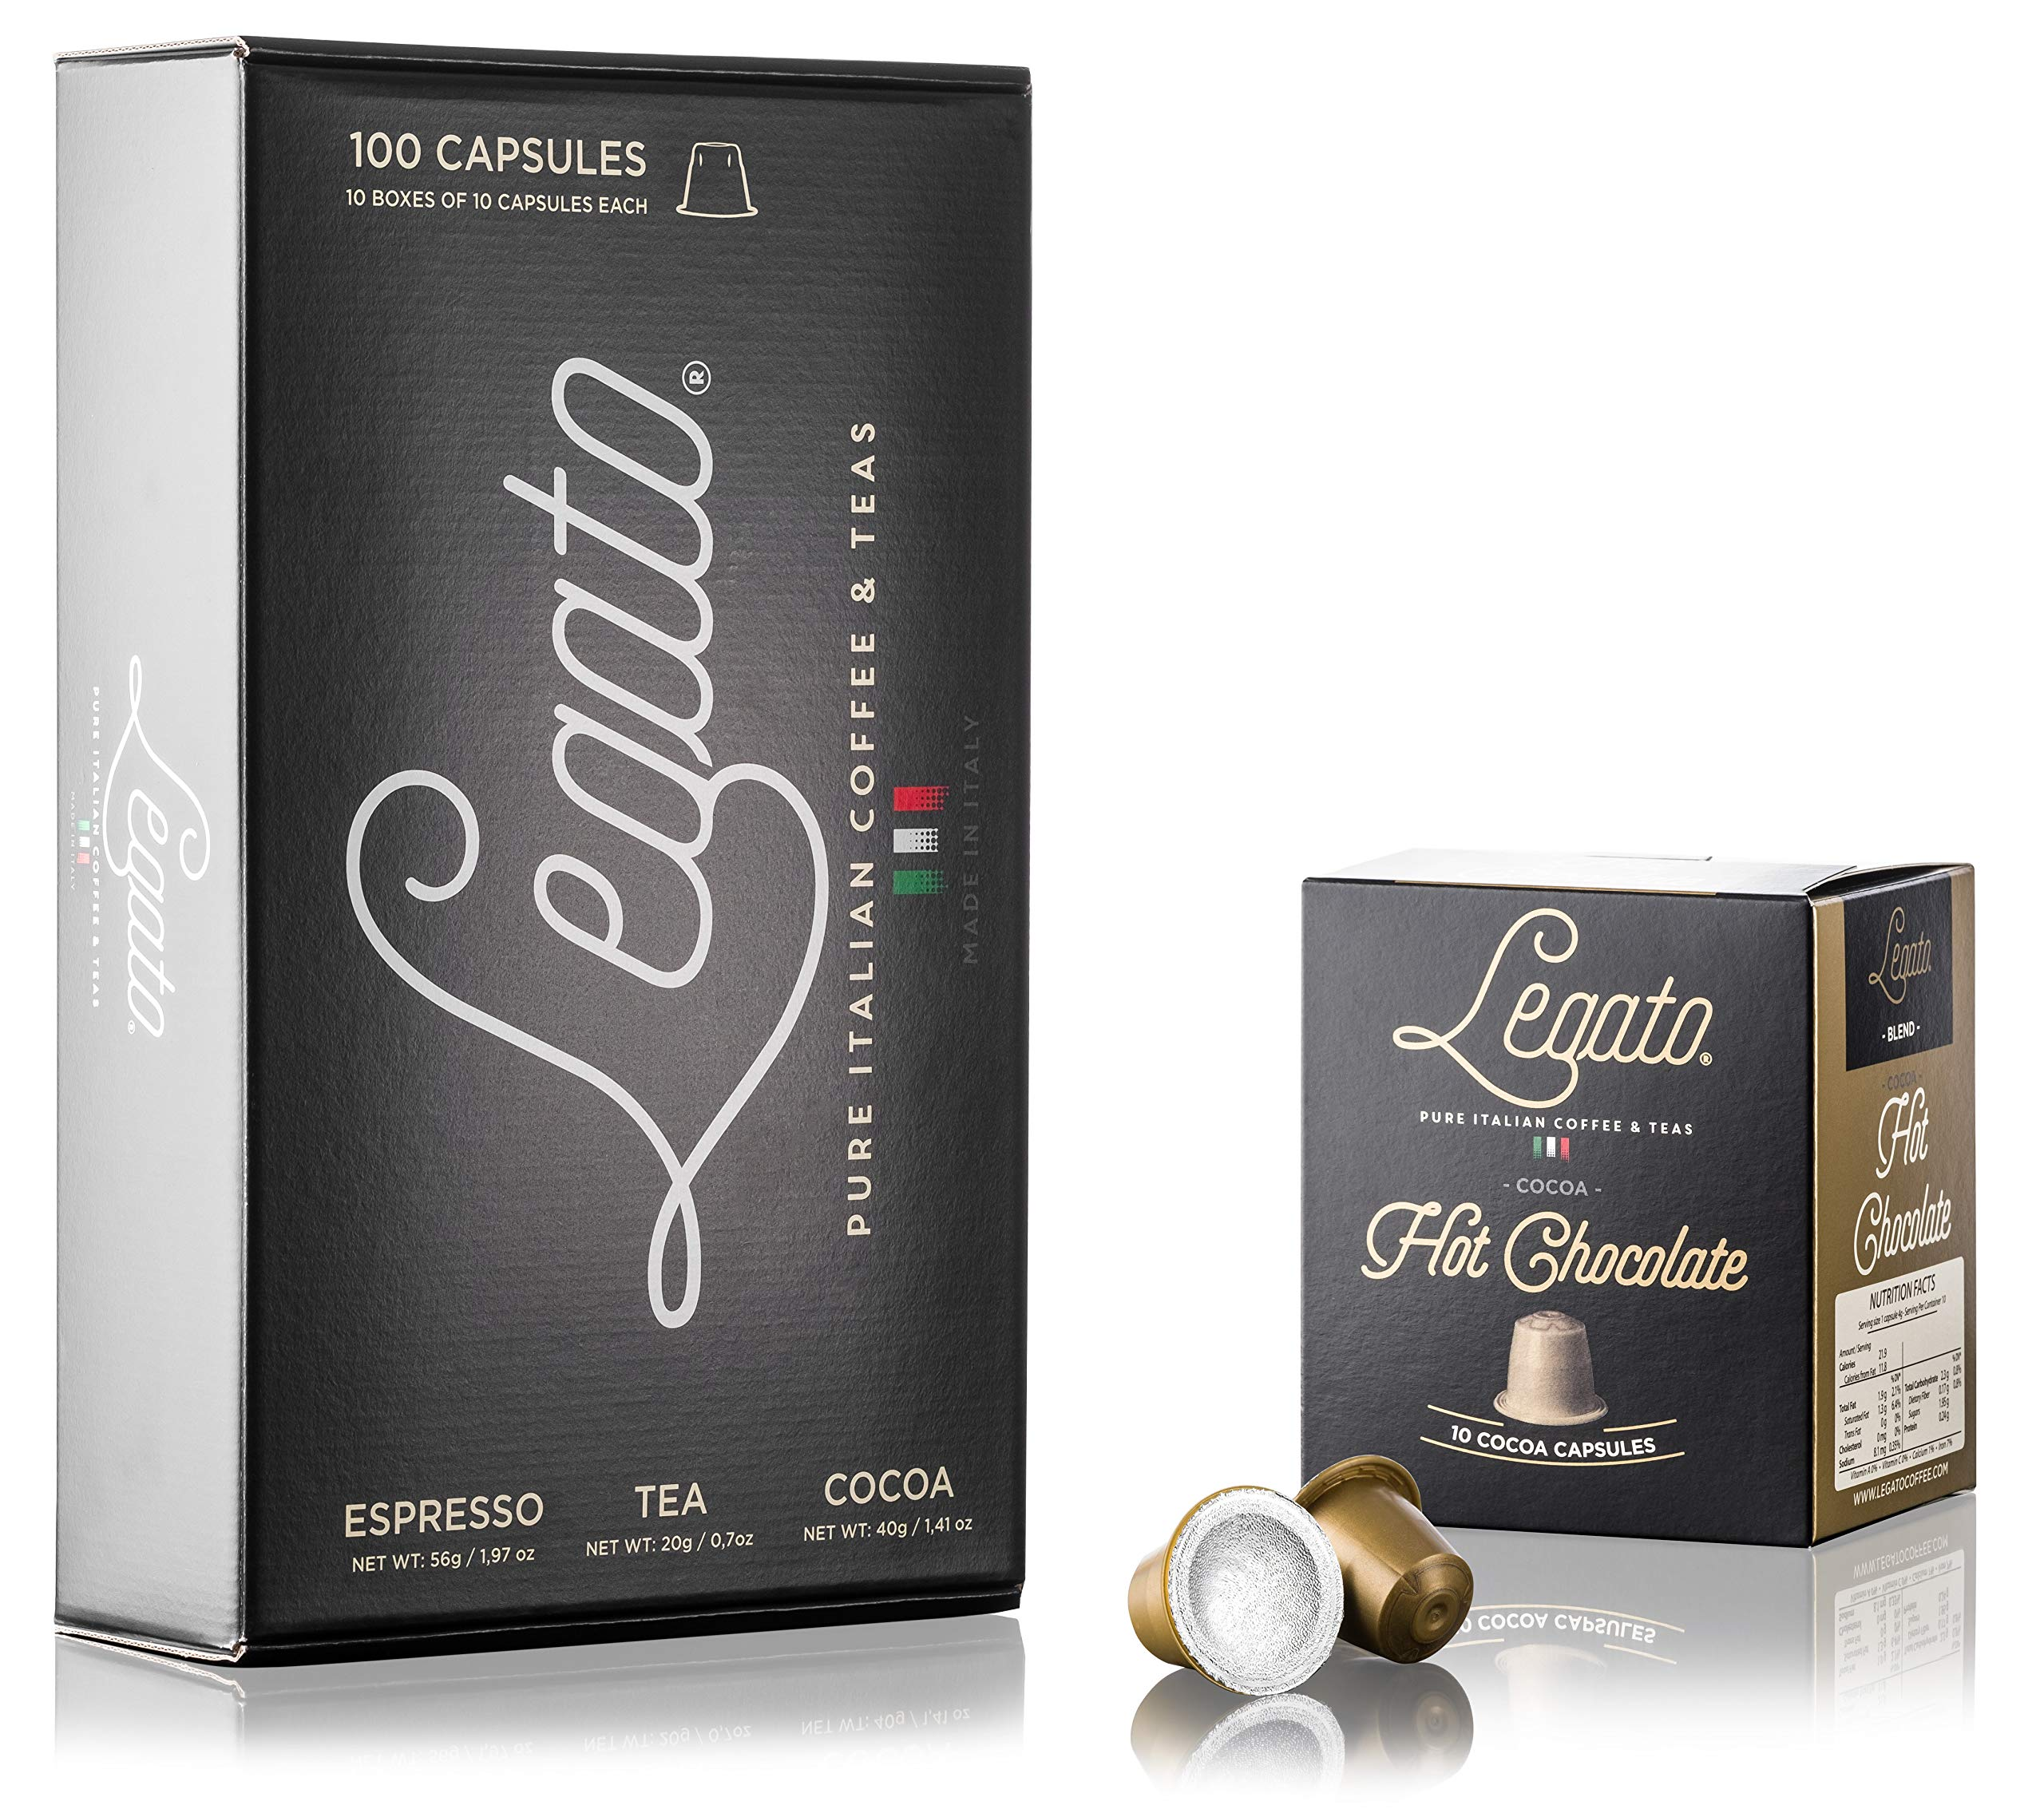 CDM product Legato Hot Chocolate Capsules - (Milk Chocolate, 100) small thumbnail image